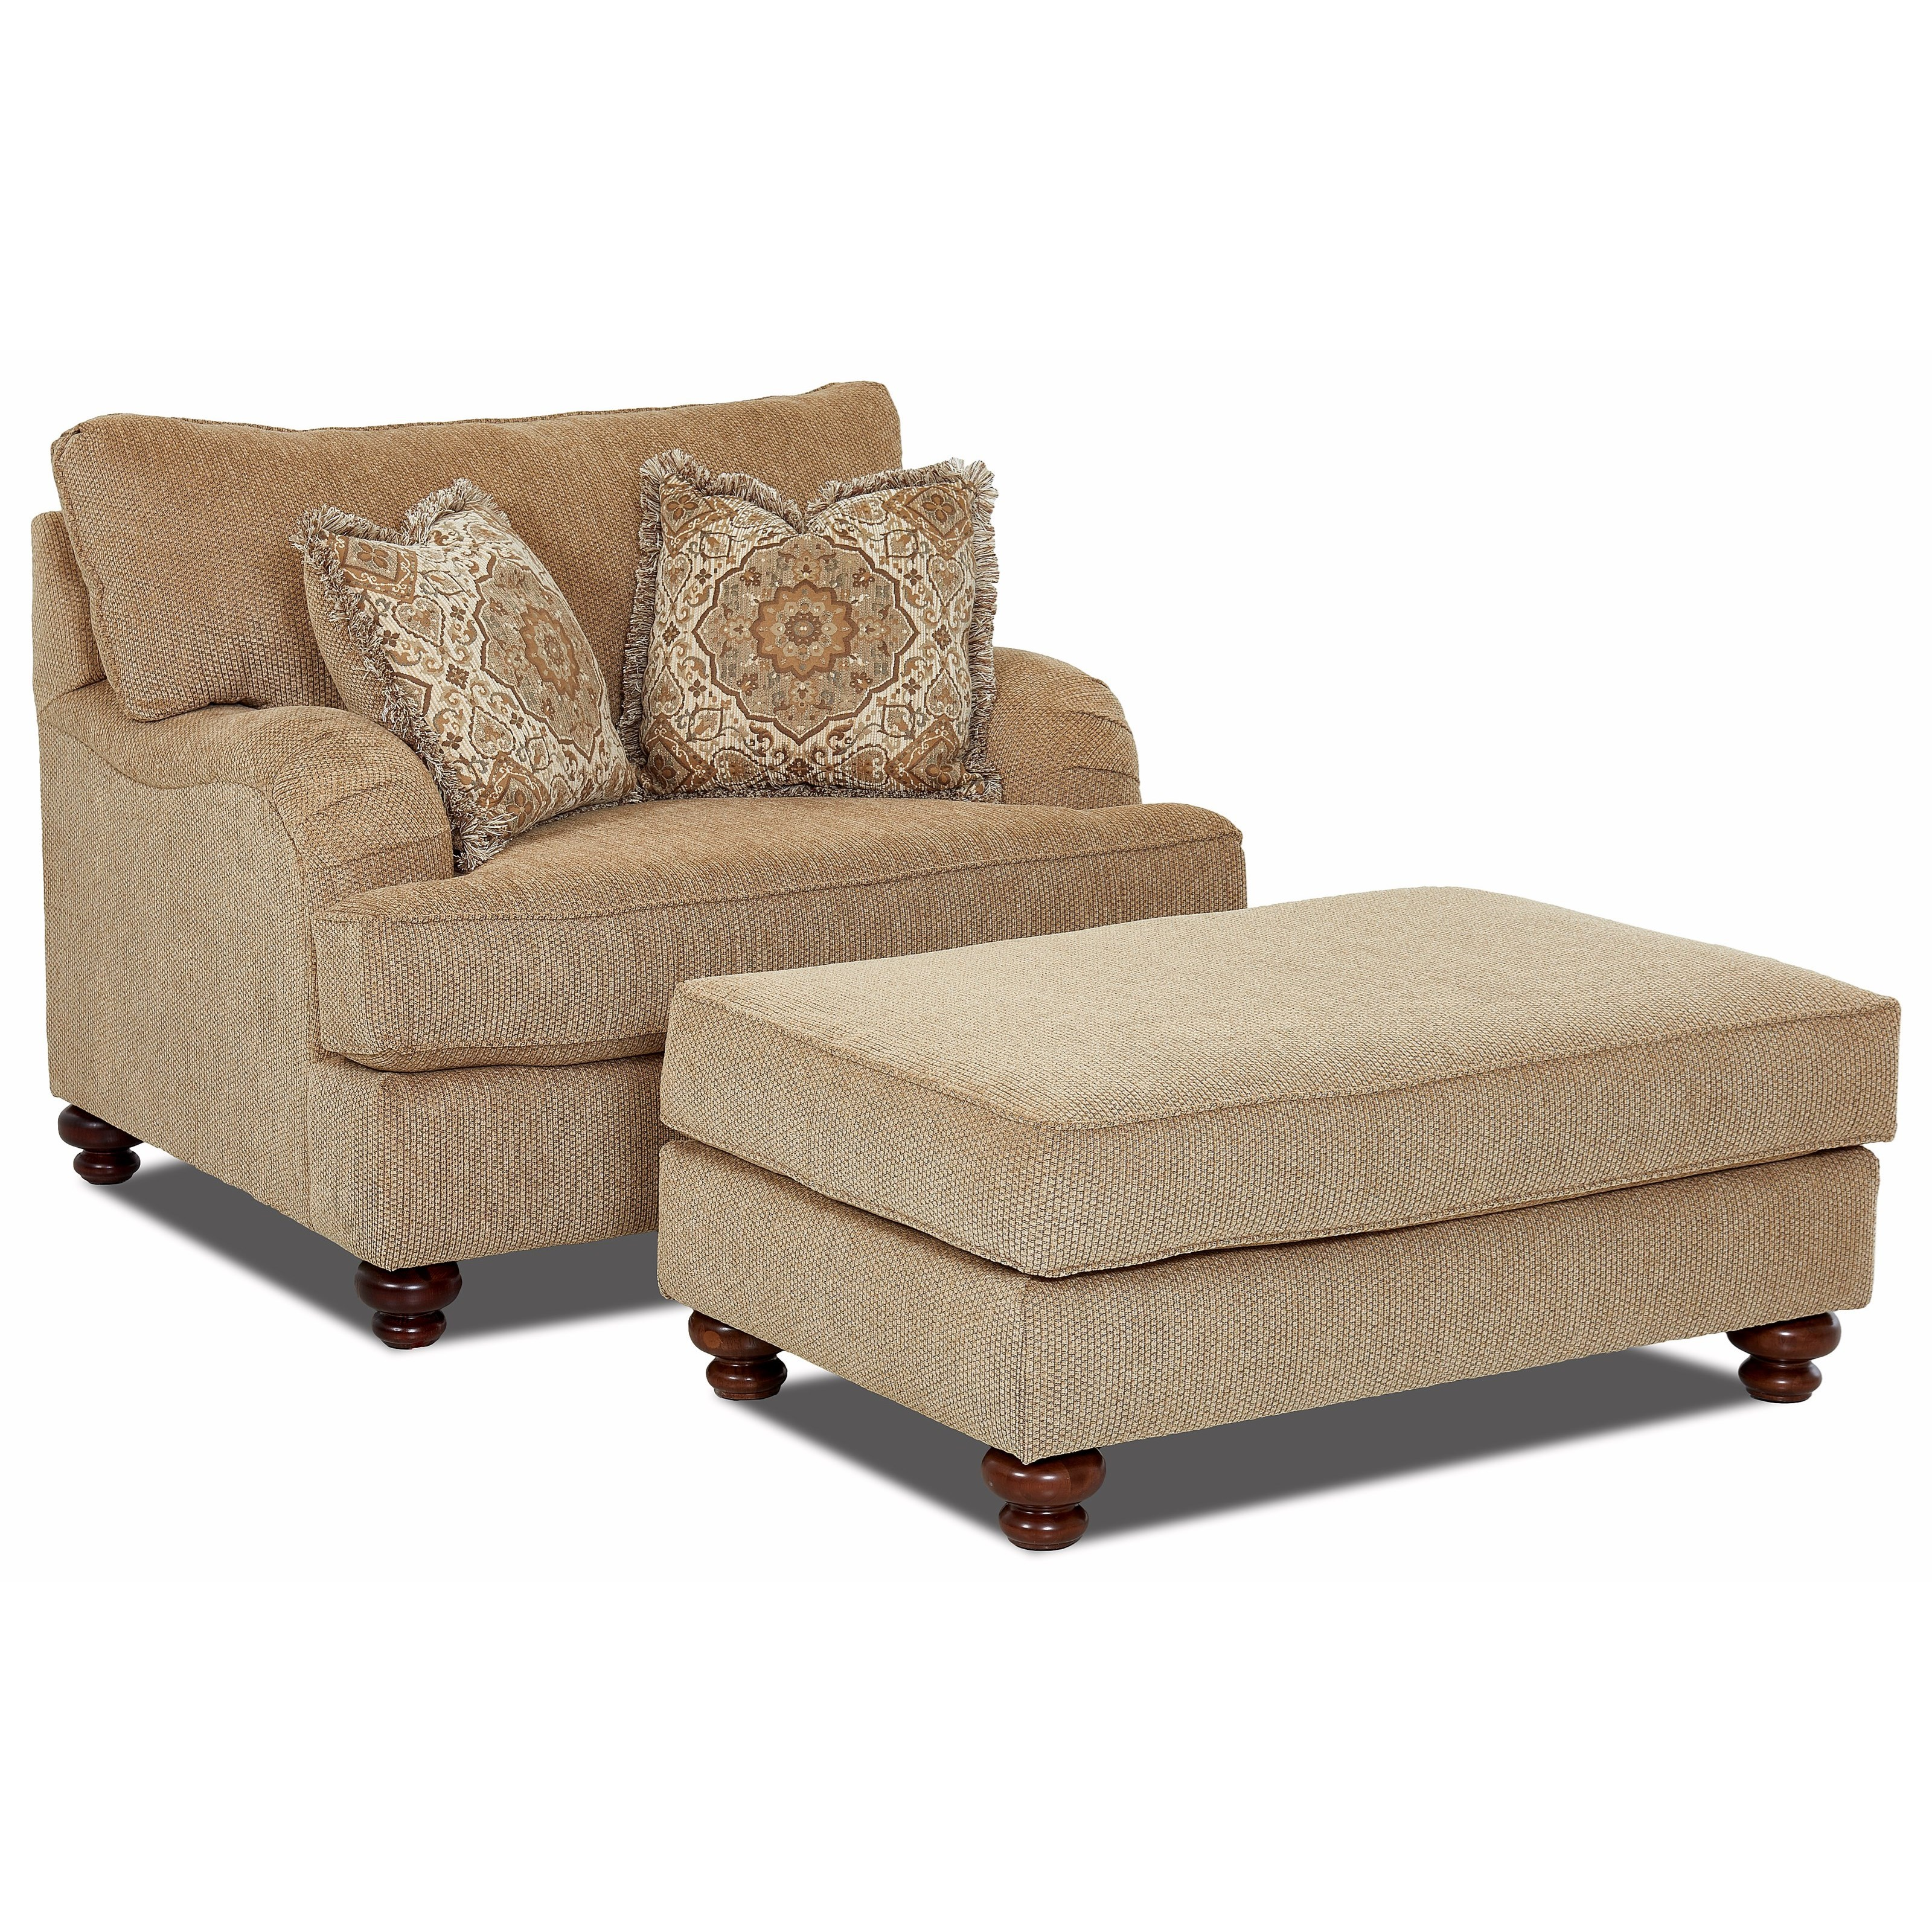 Royal Furniture Hoover Al Signature Design By Milhaven Reclining Claremore Antique Loveseat